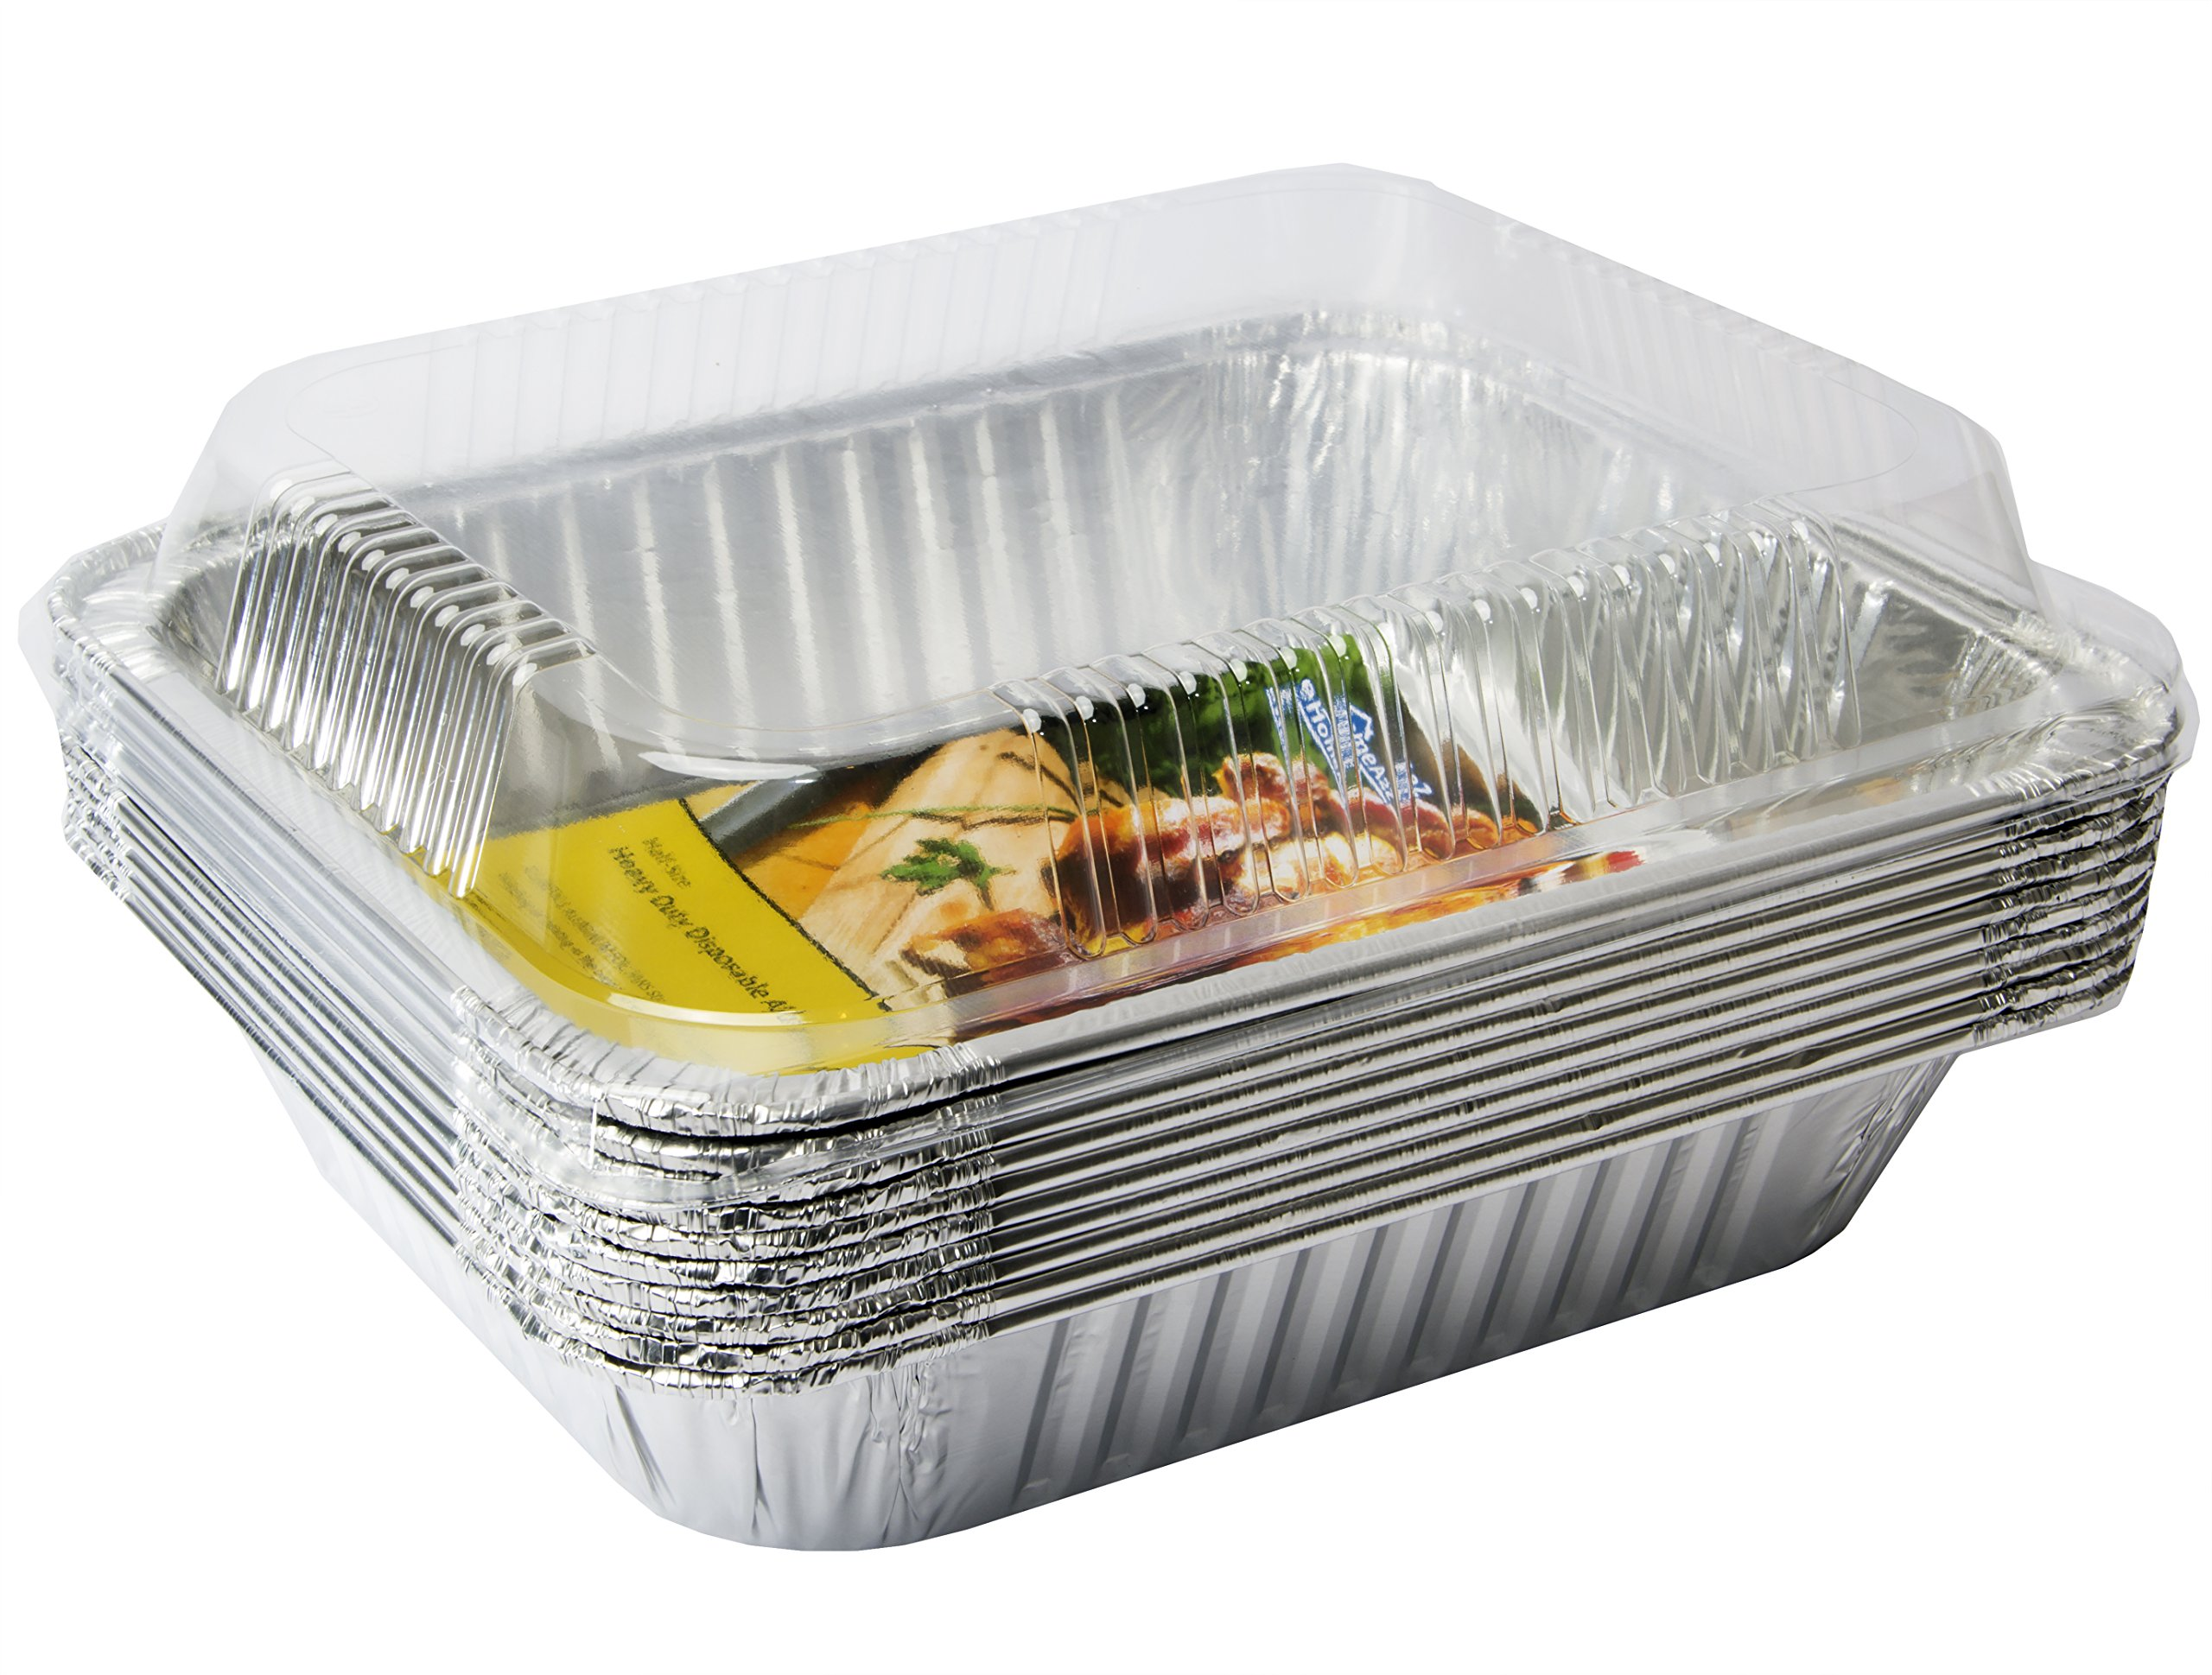 eHomeA2Z Half Size Deep Disposable Aluminum Foil Steam Table Pans With Dome Lids for Cooking, Roasting, Broiling, Baking - 13 x 10 x 3 (10, Half Size w/Dome Lids)